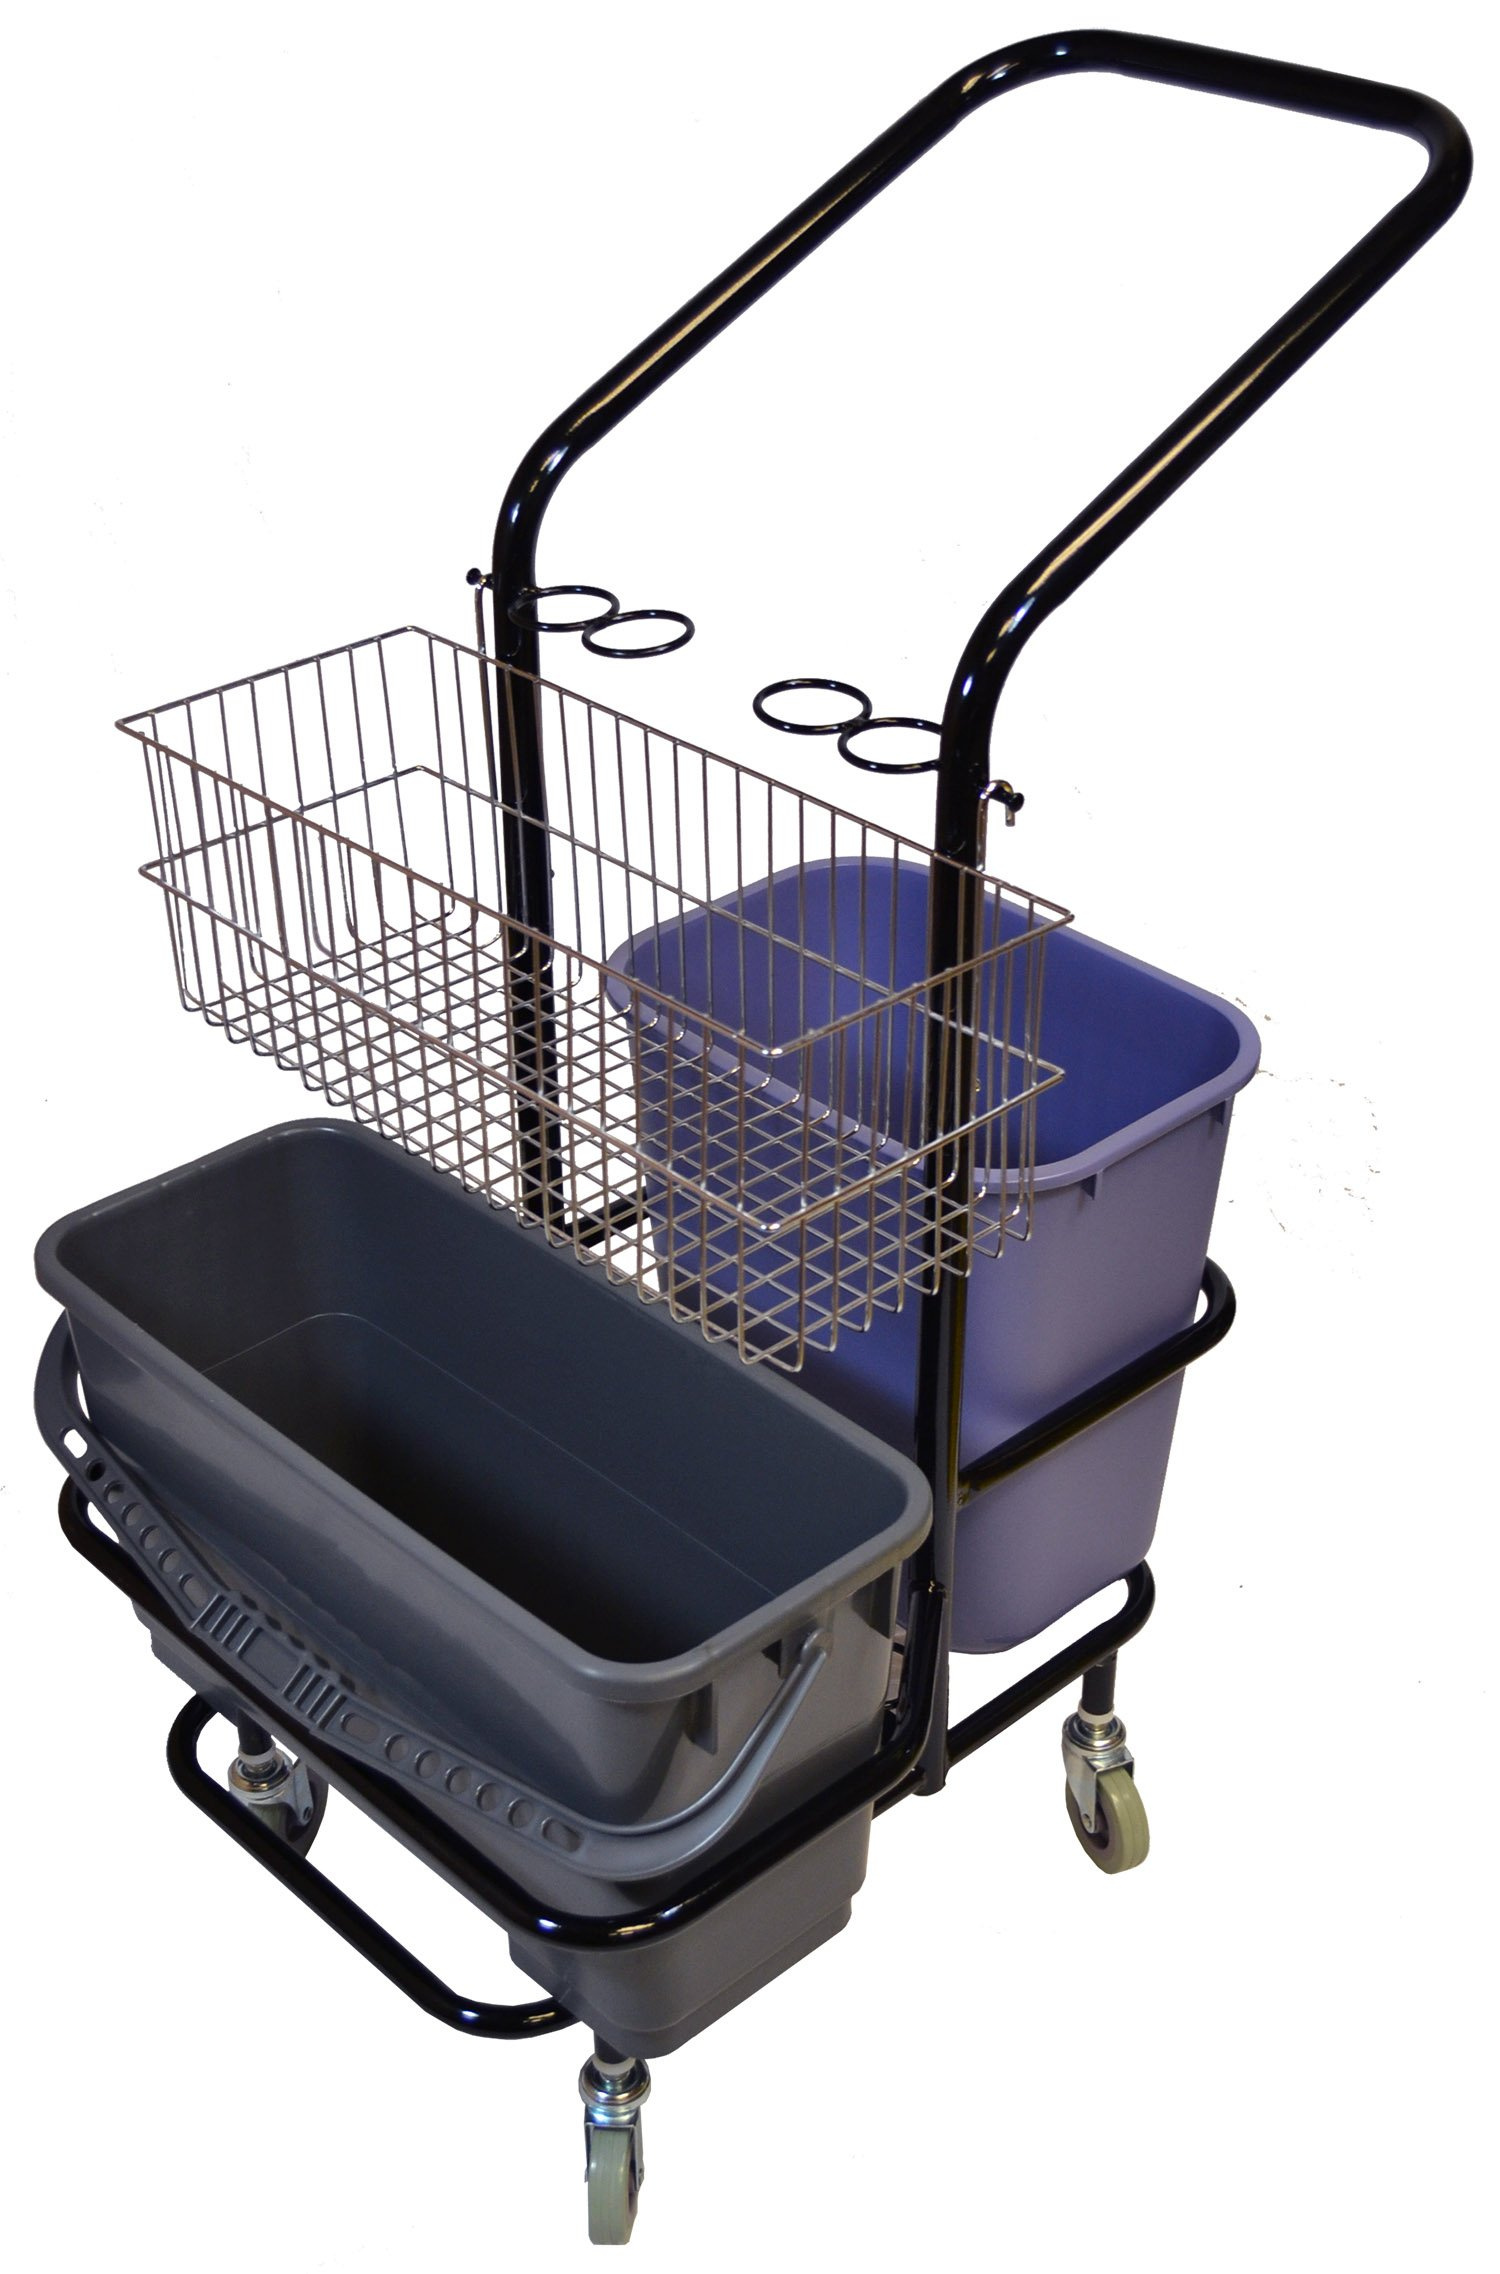 Golden Star T4216 Janitor Microfiber Trolley, 4 Wheel